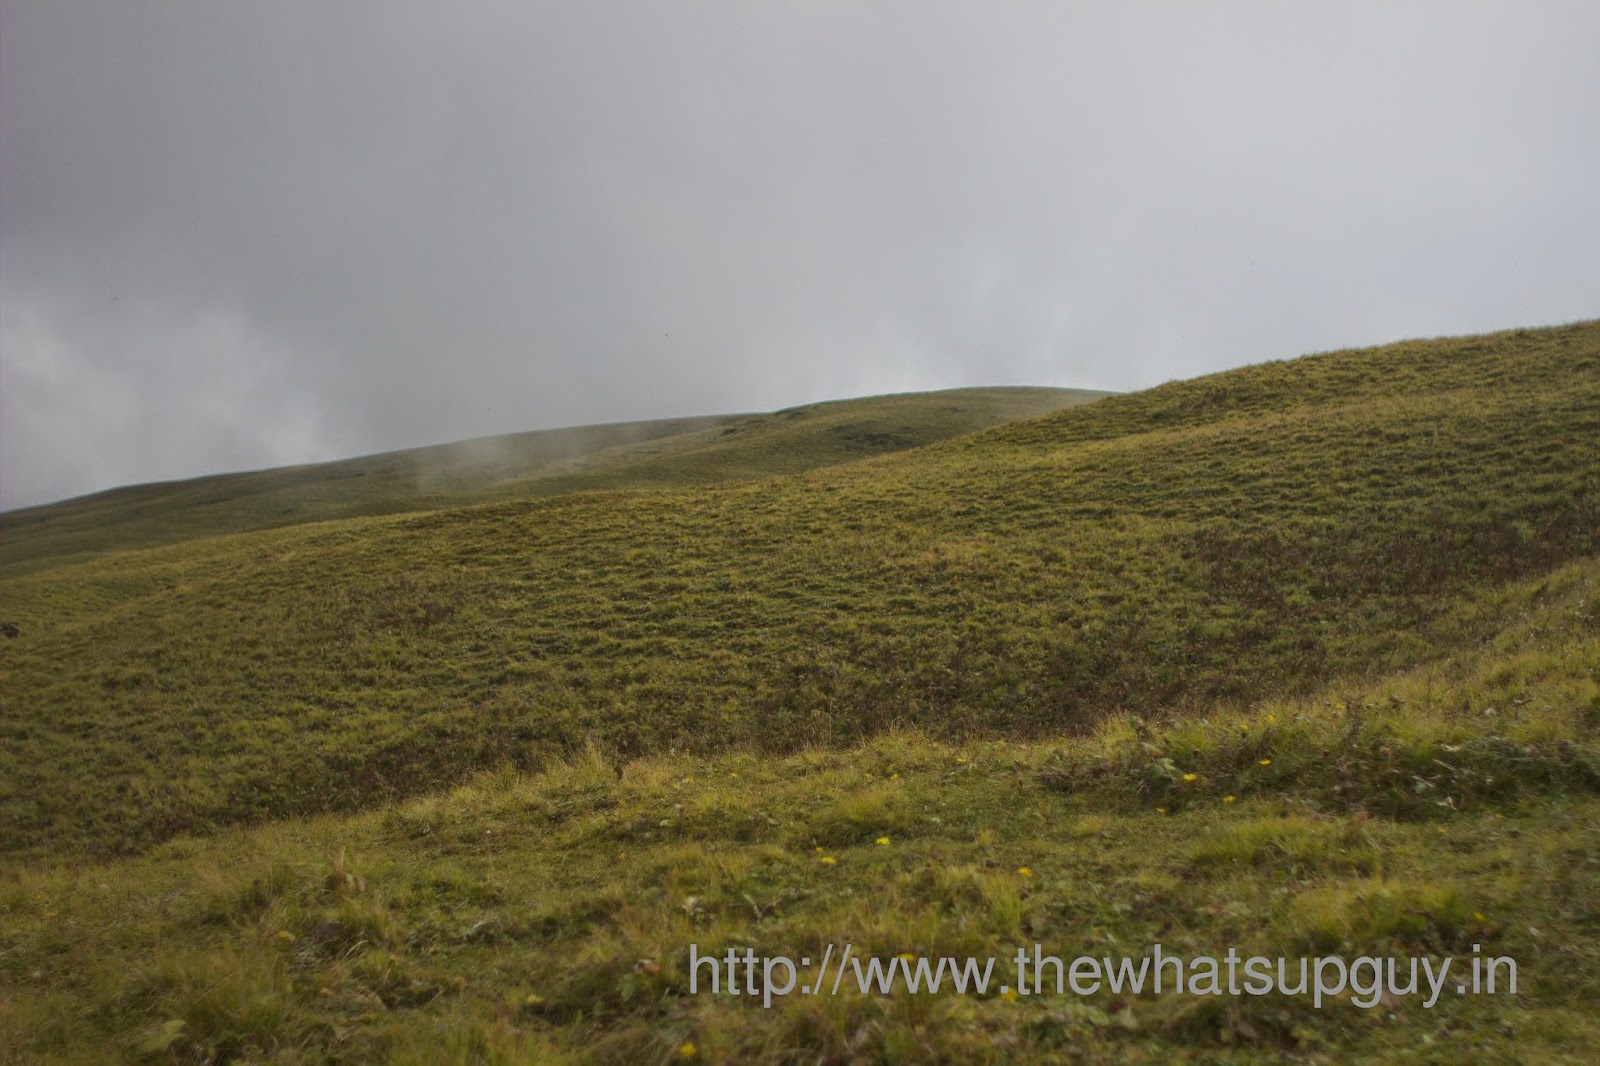 Windows-Xp-Wallpaper-Ali-Bugyal-Roopkund-Trek-With-India-Hikes-Day-2